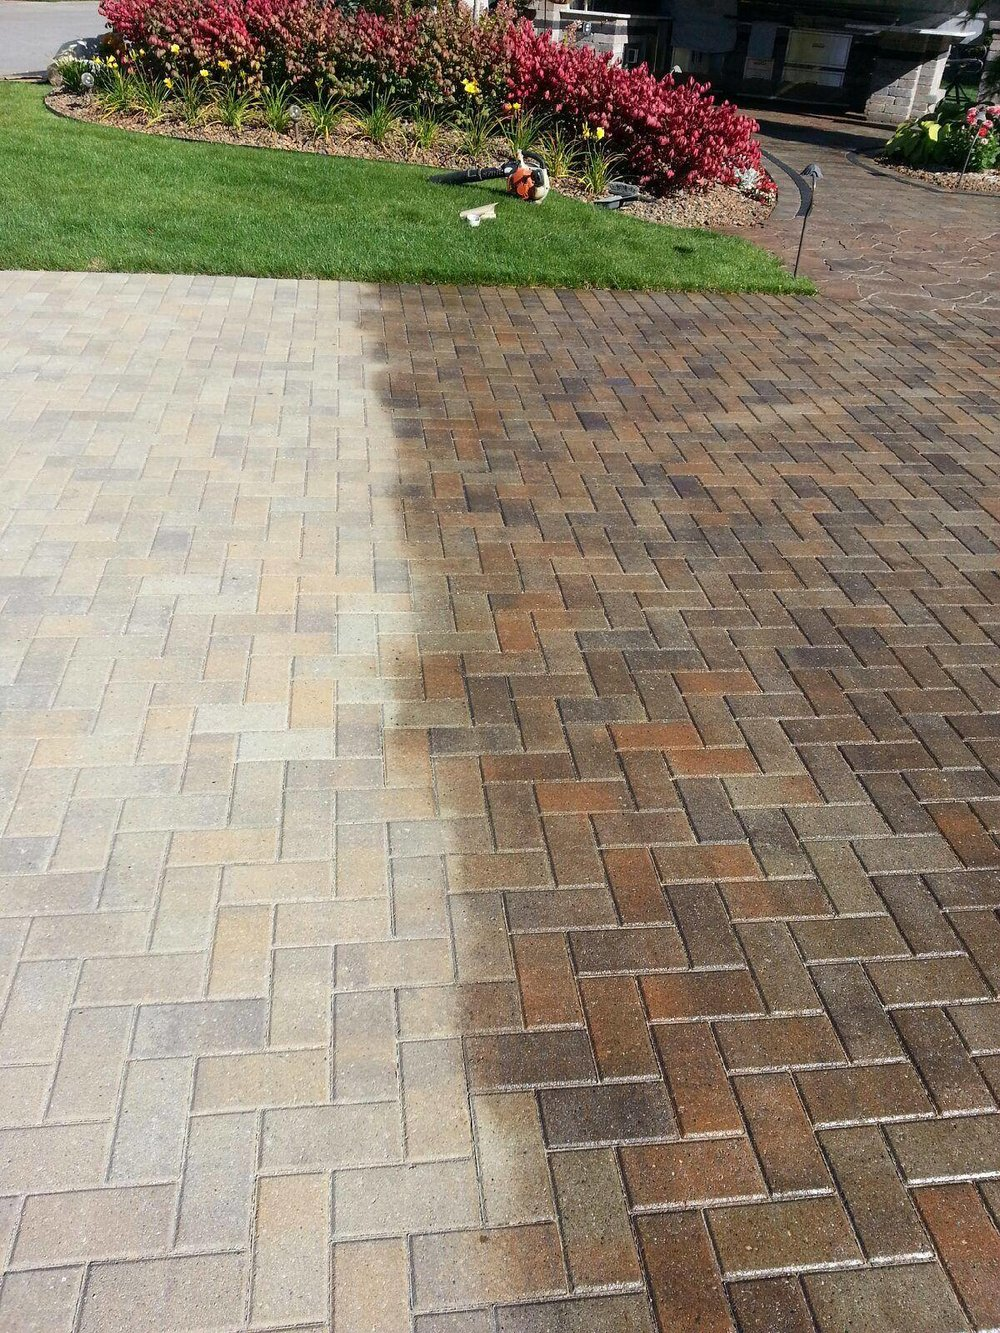 Maintenance for patio pavers and paving stones in Troy MI